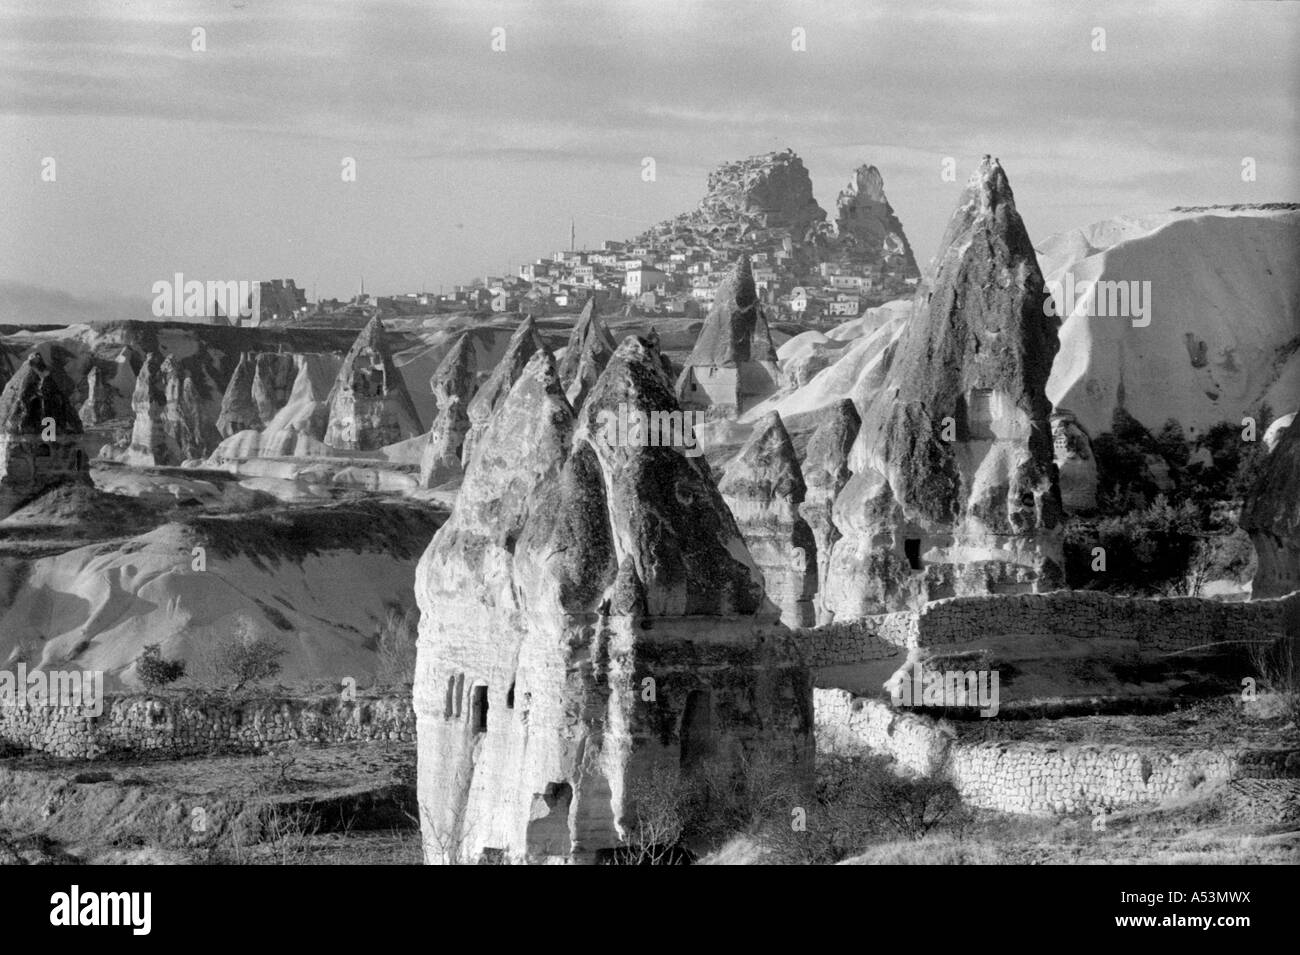 Painet ha1469 300 black and white landscape nevsehir cappadocia turkey country developing nation less economically - Stock Image